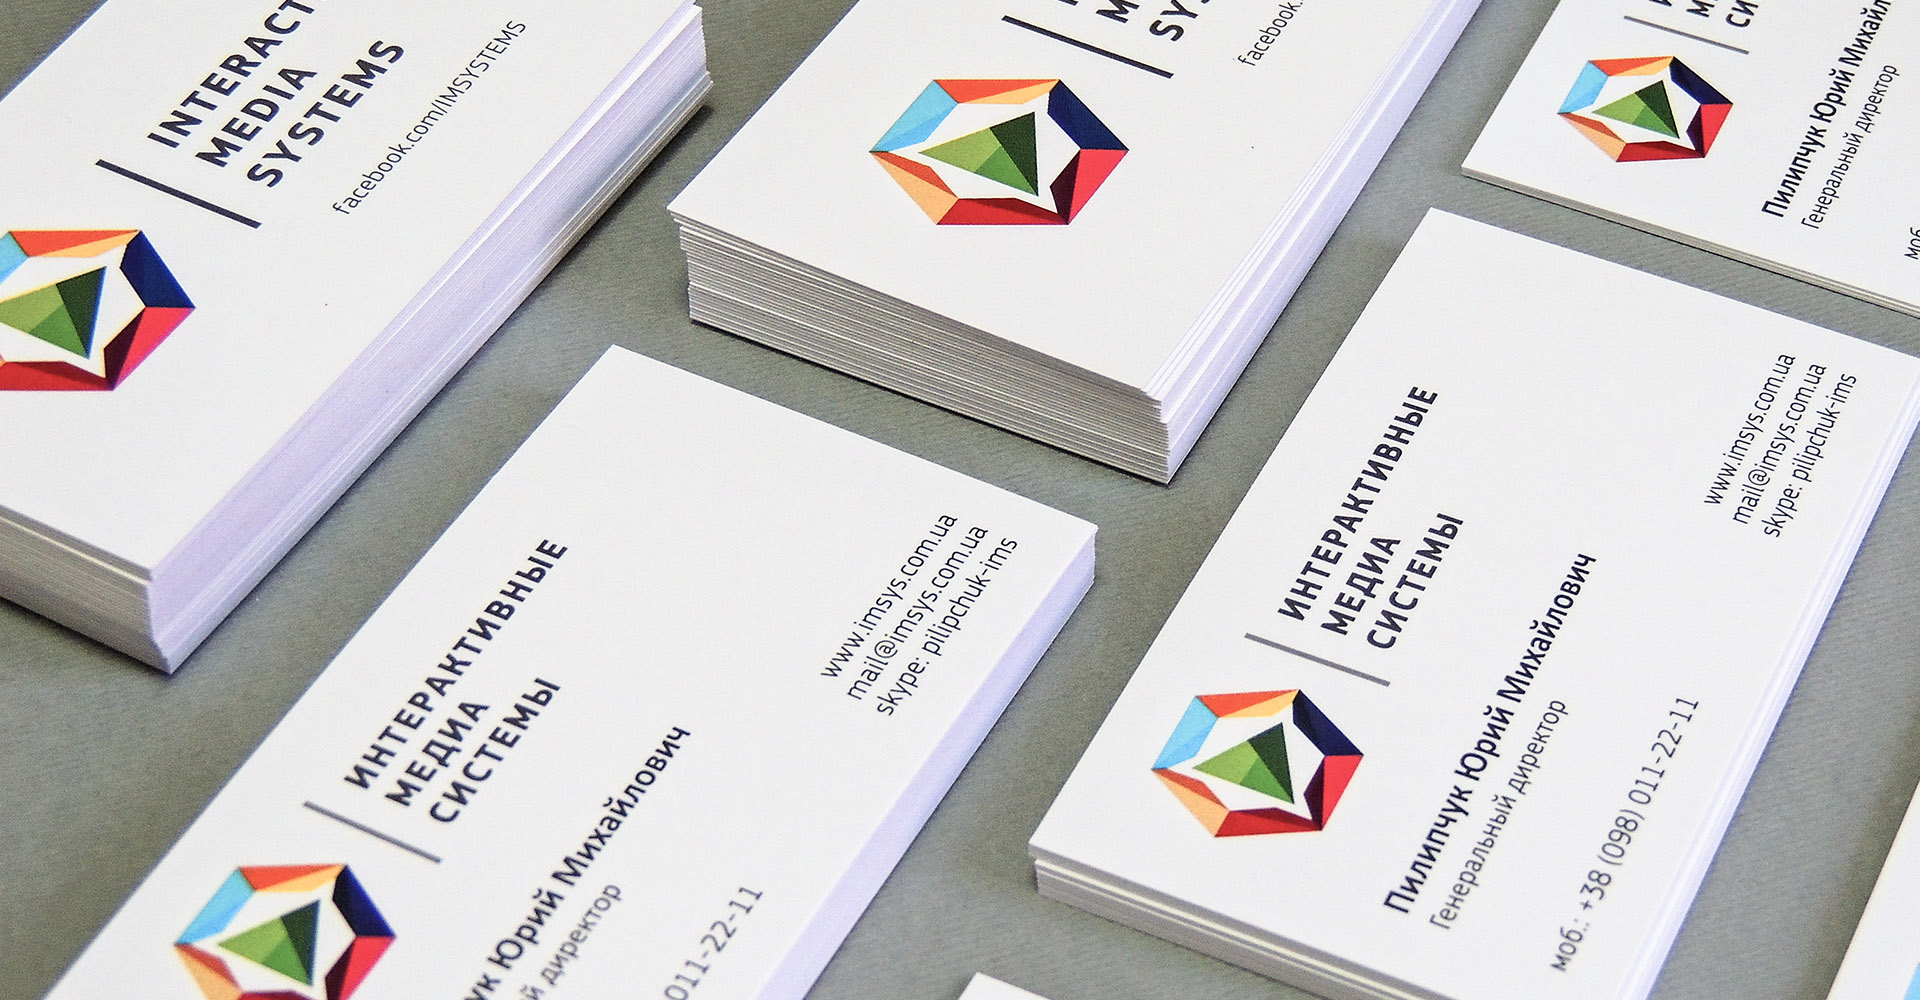 Дизайн визиток IT компании, IT company business cards design